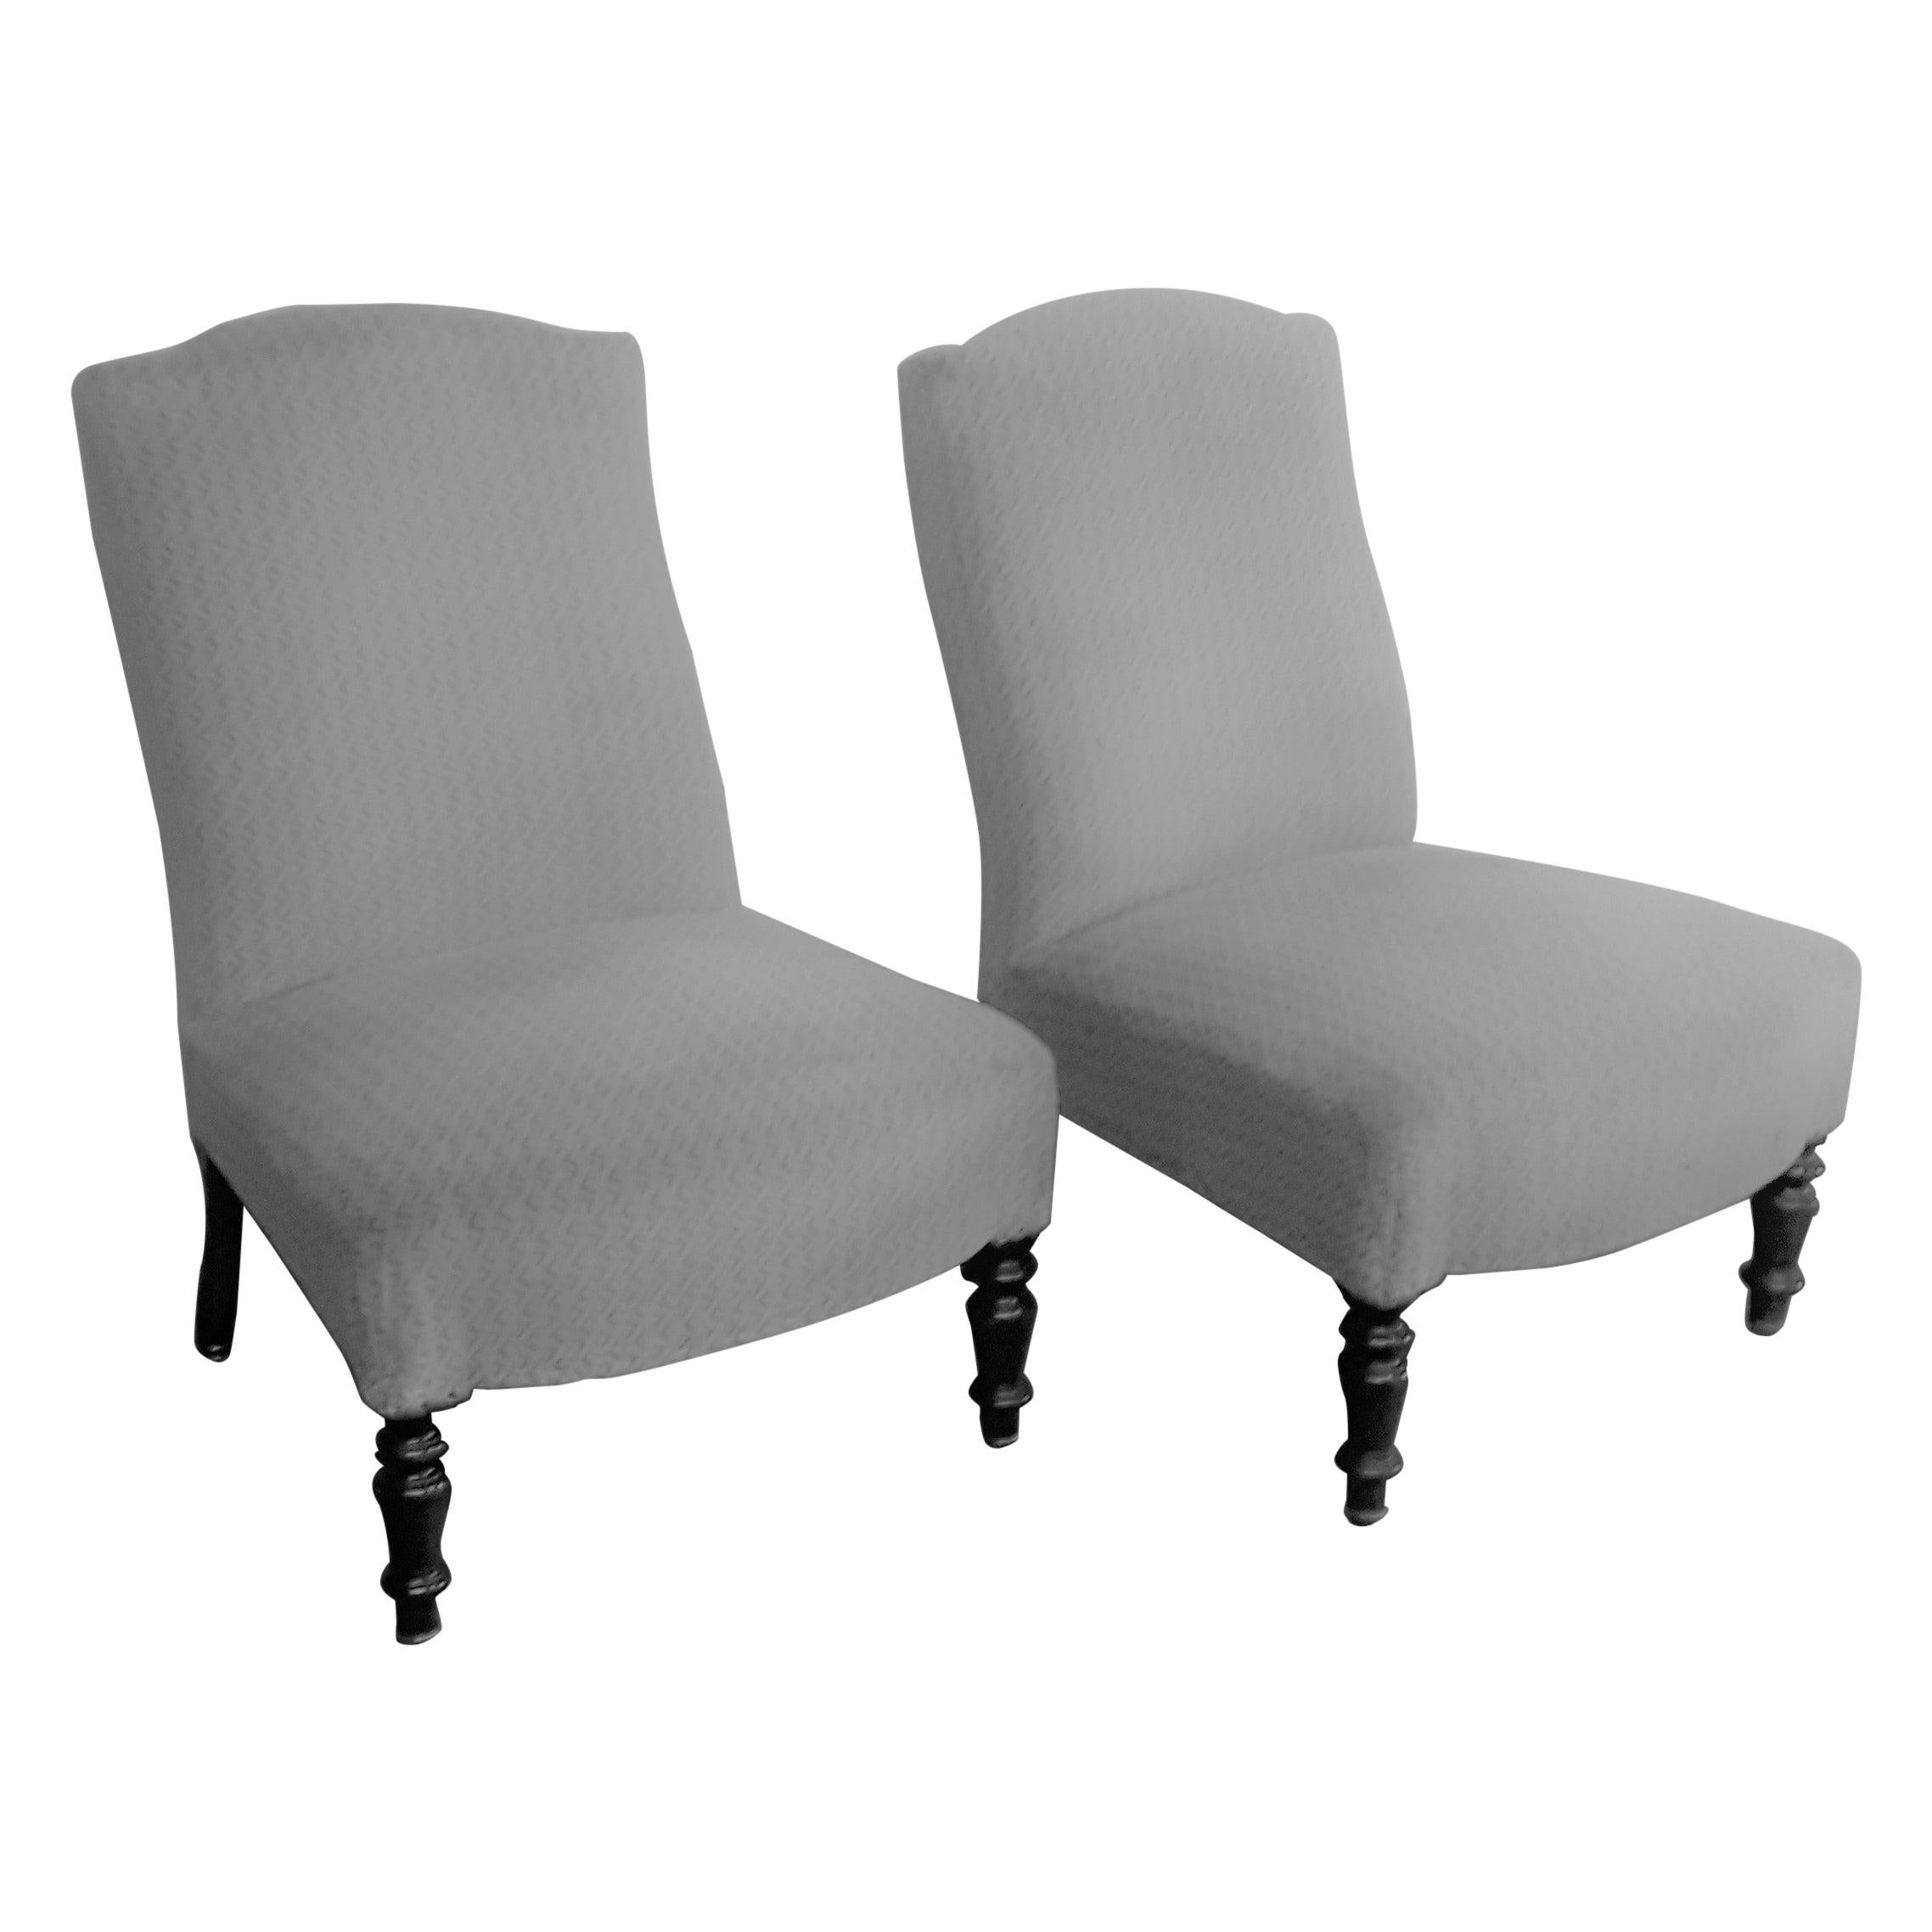 Pair of Napoleon III Slipper Side Chairs with Ebonised Legs